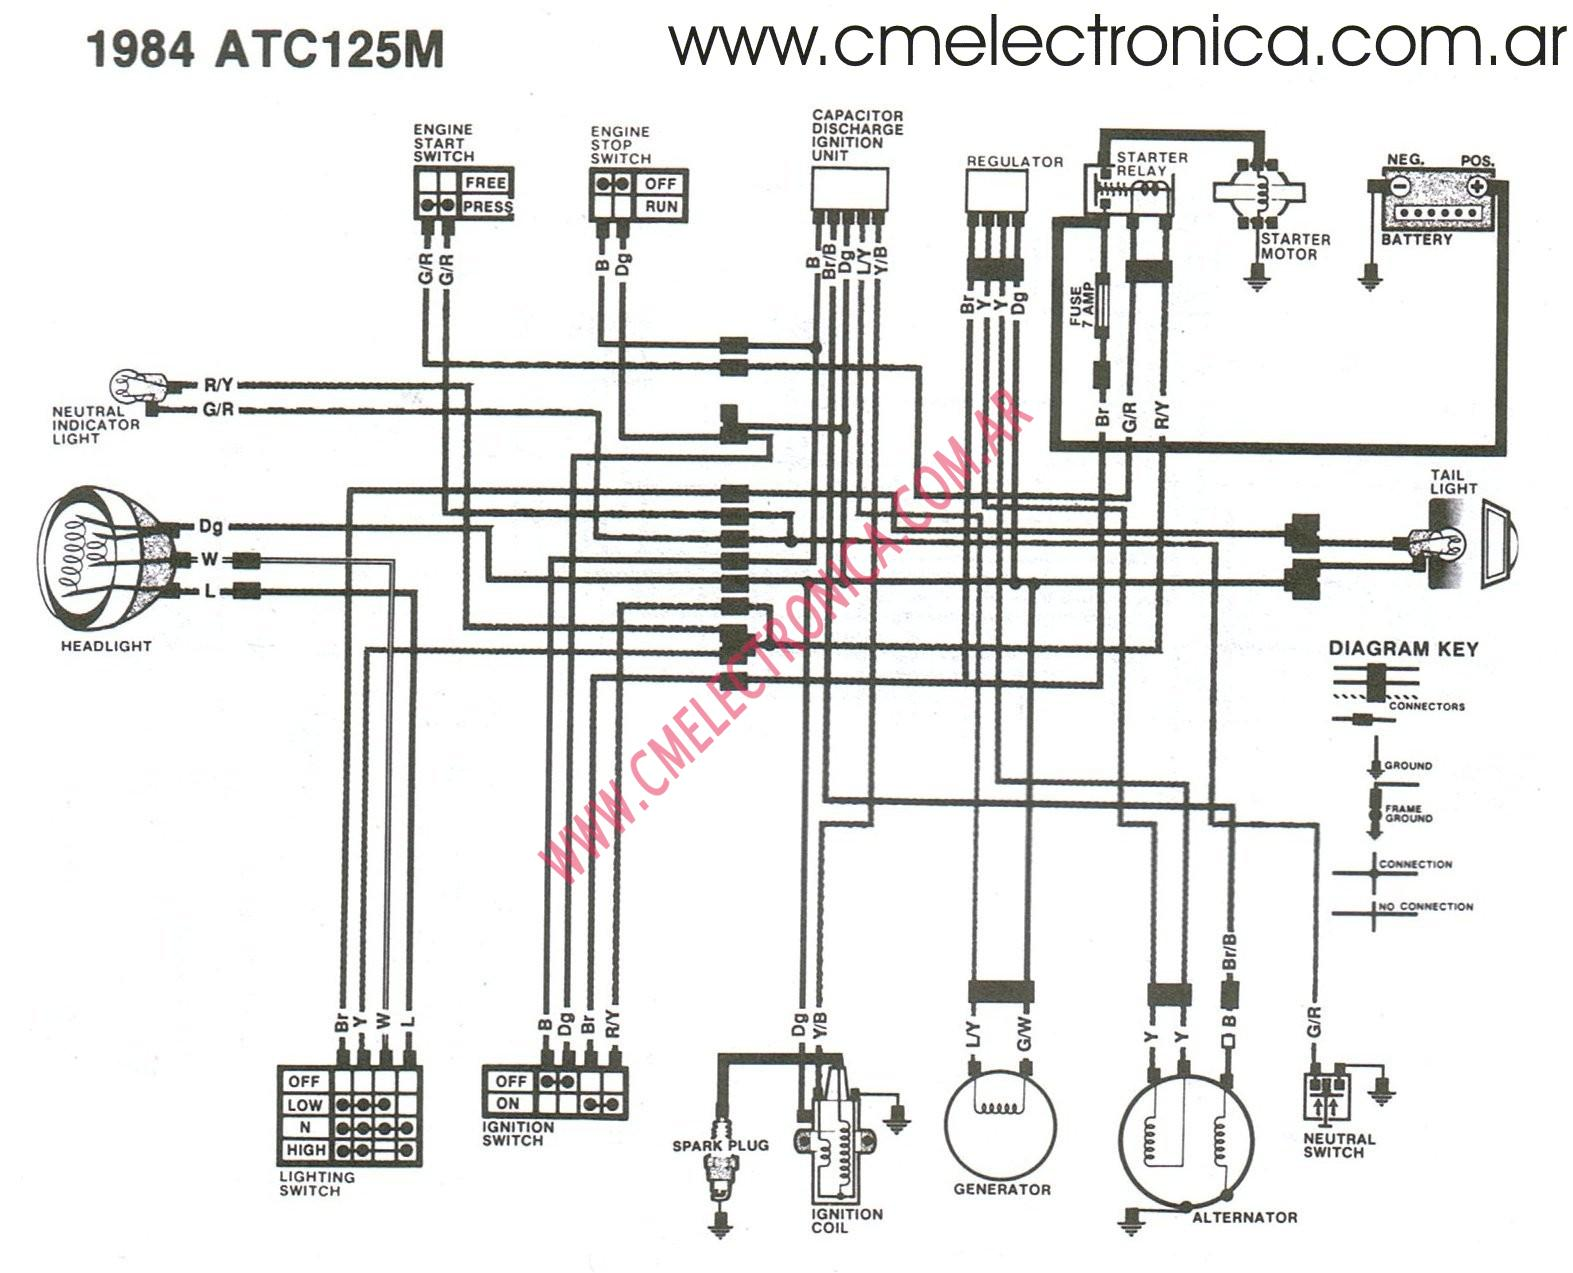 84 Atc 125 Wiring Diagram Home Honda Trx 400 Simple 1985 110 Parts